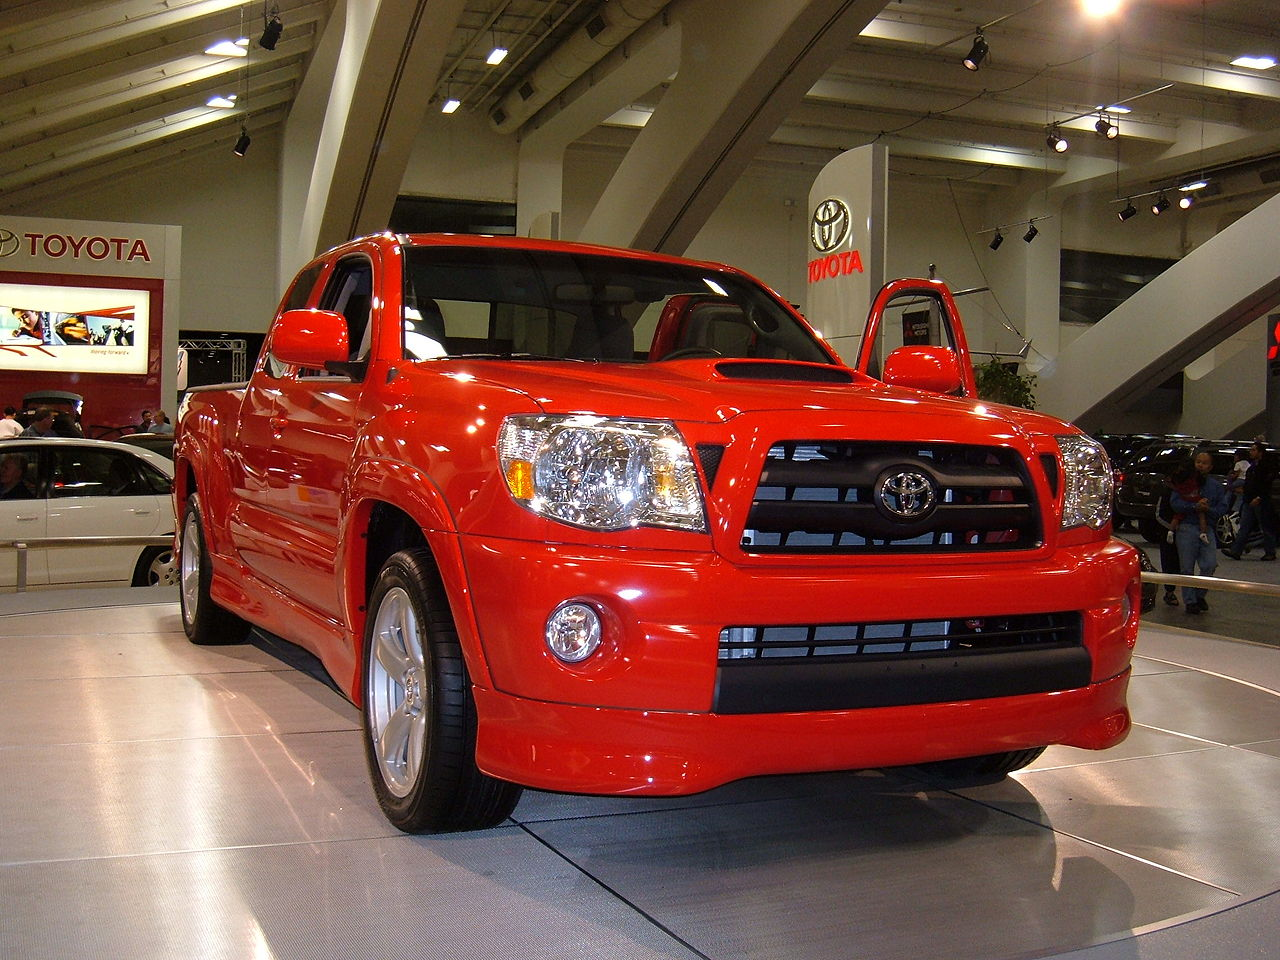 File:2005 red Toyota Tacoma X-Runner.JPG - Wikimedia Commons